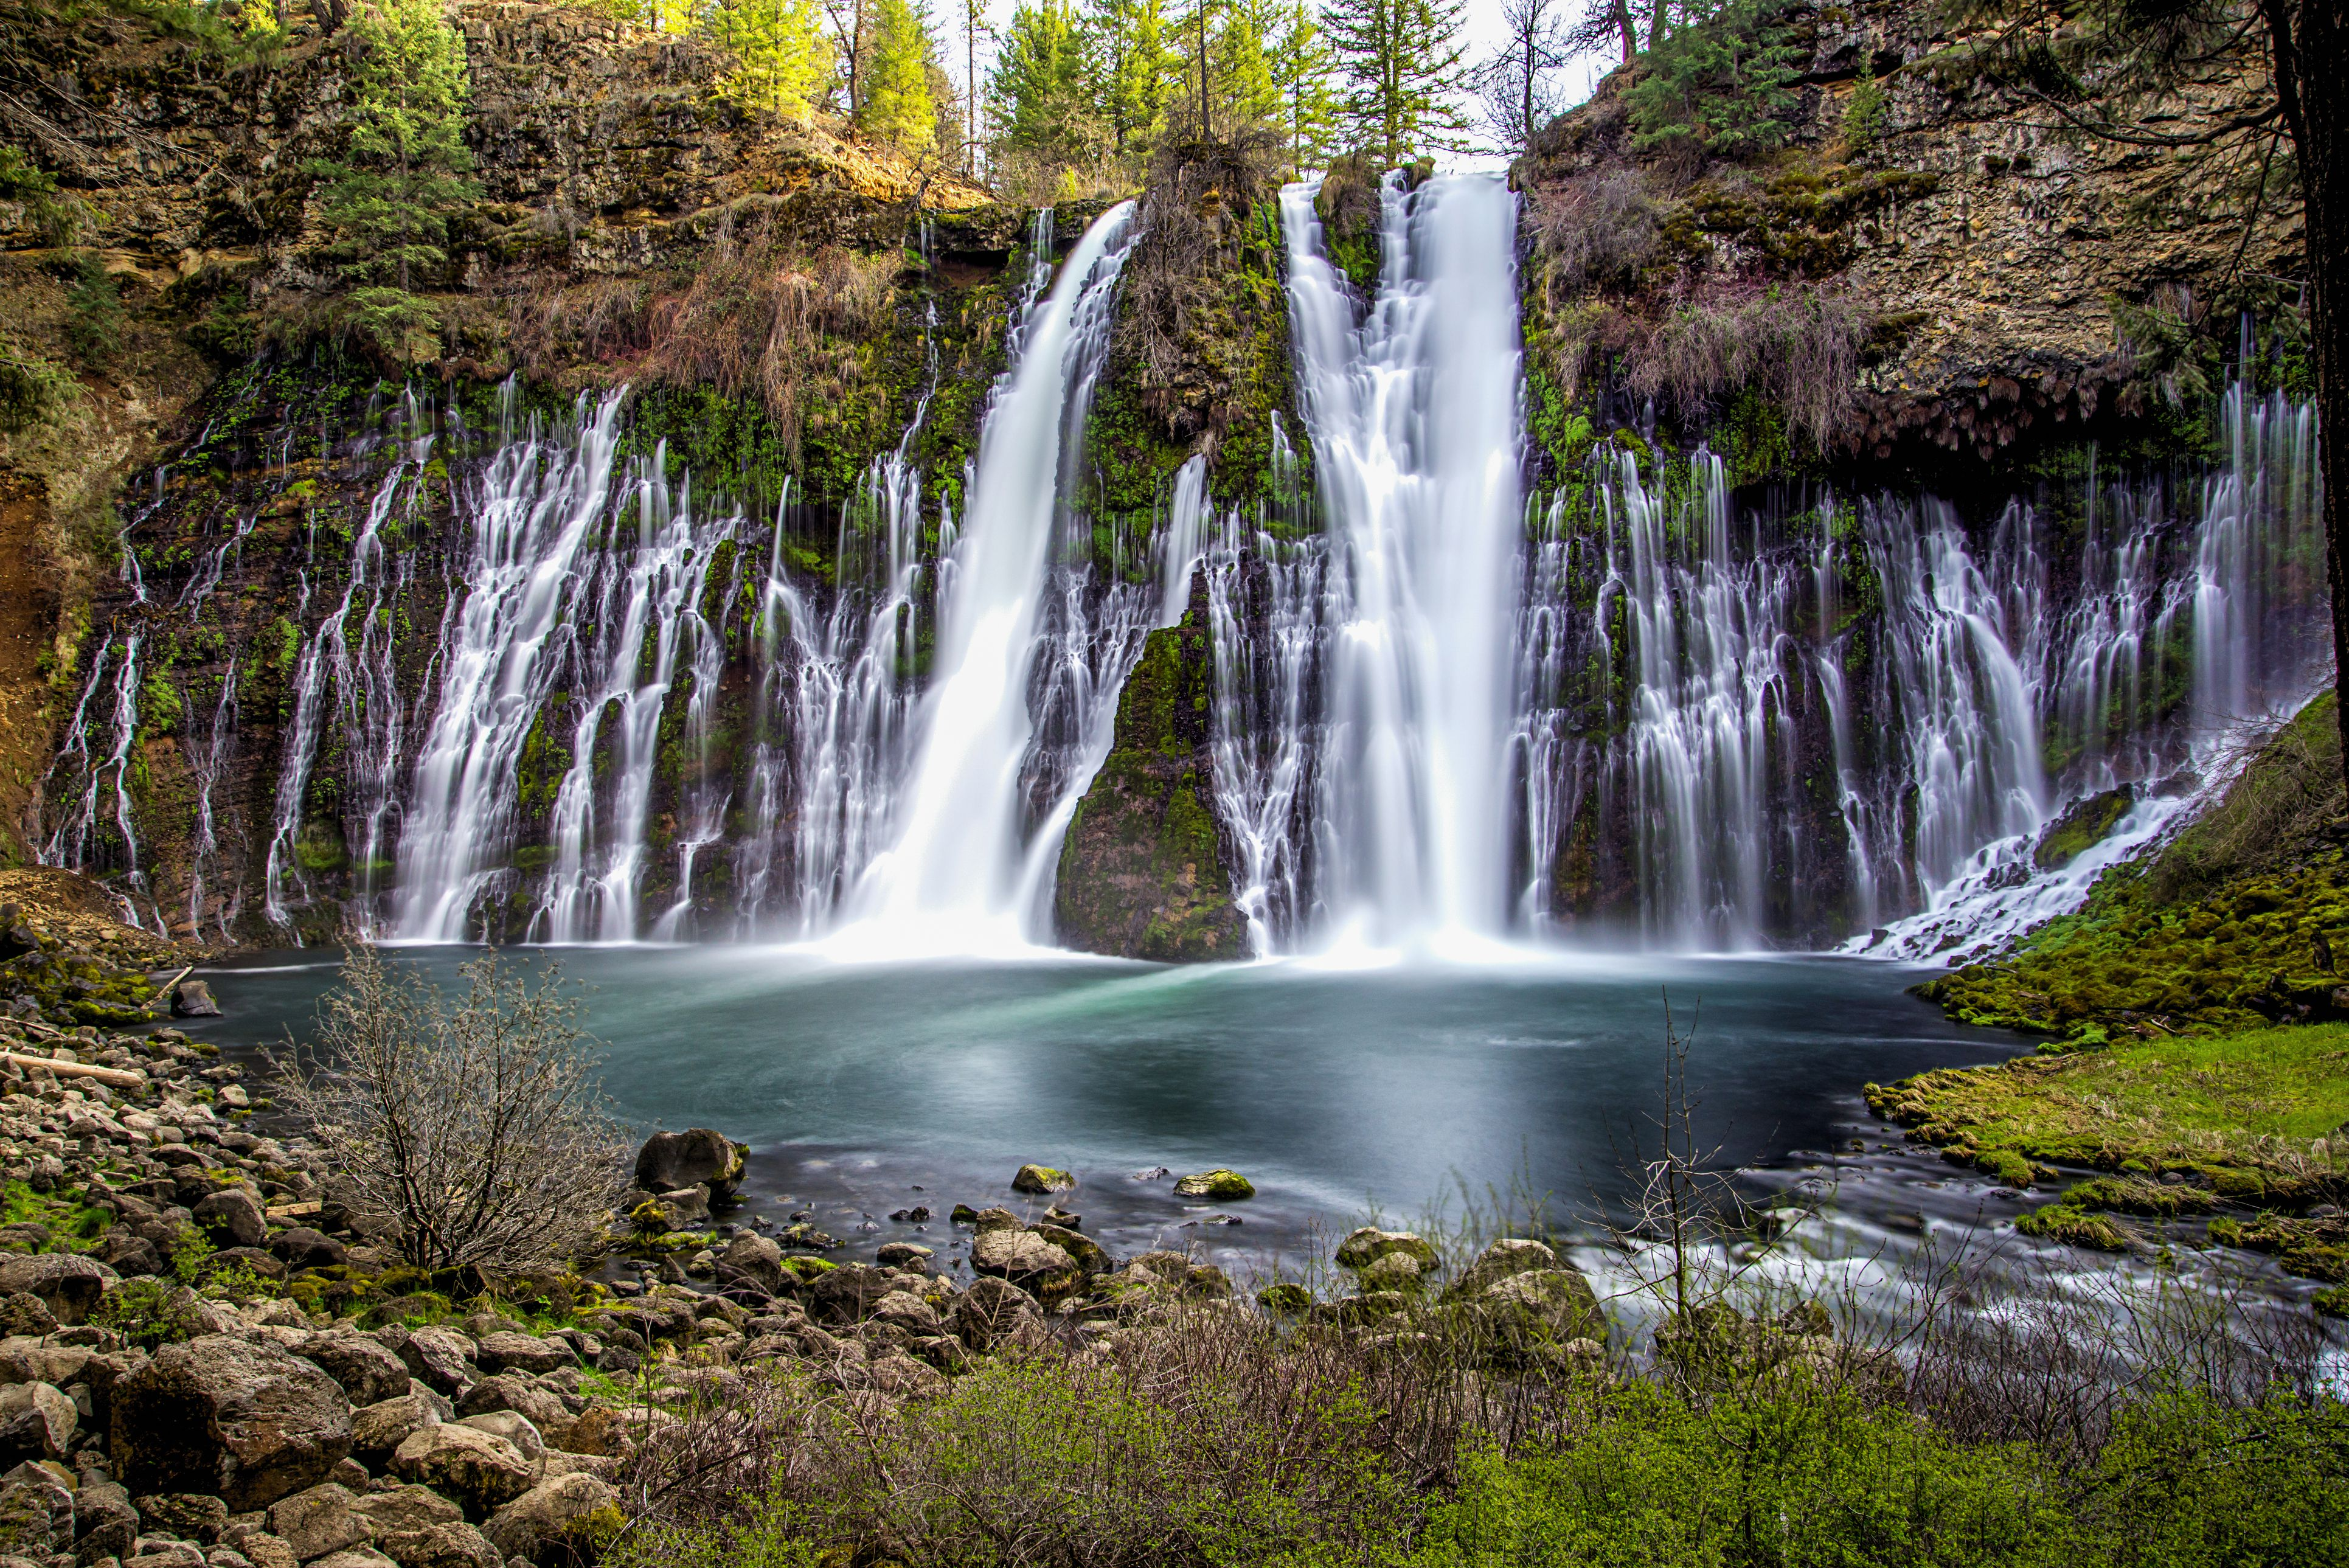 McArthur Burney Falls State Park: The Complete Guide